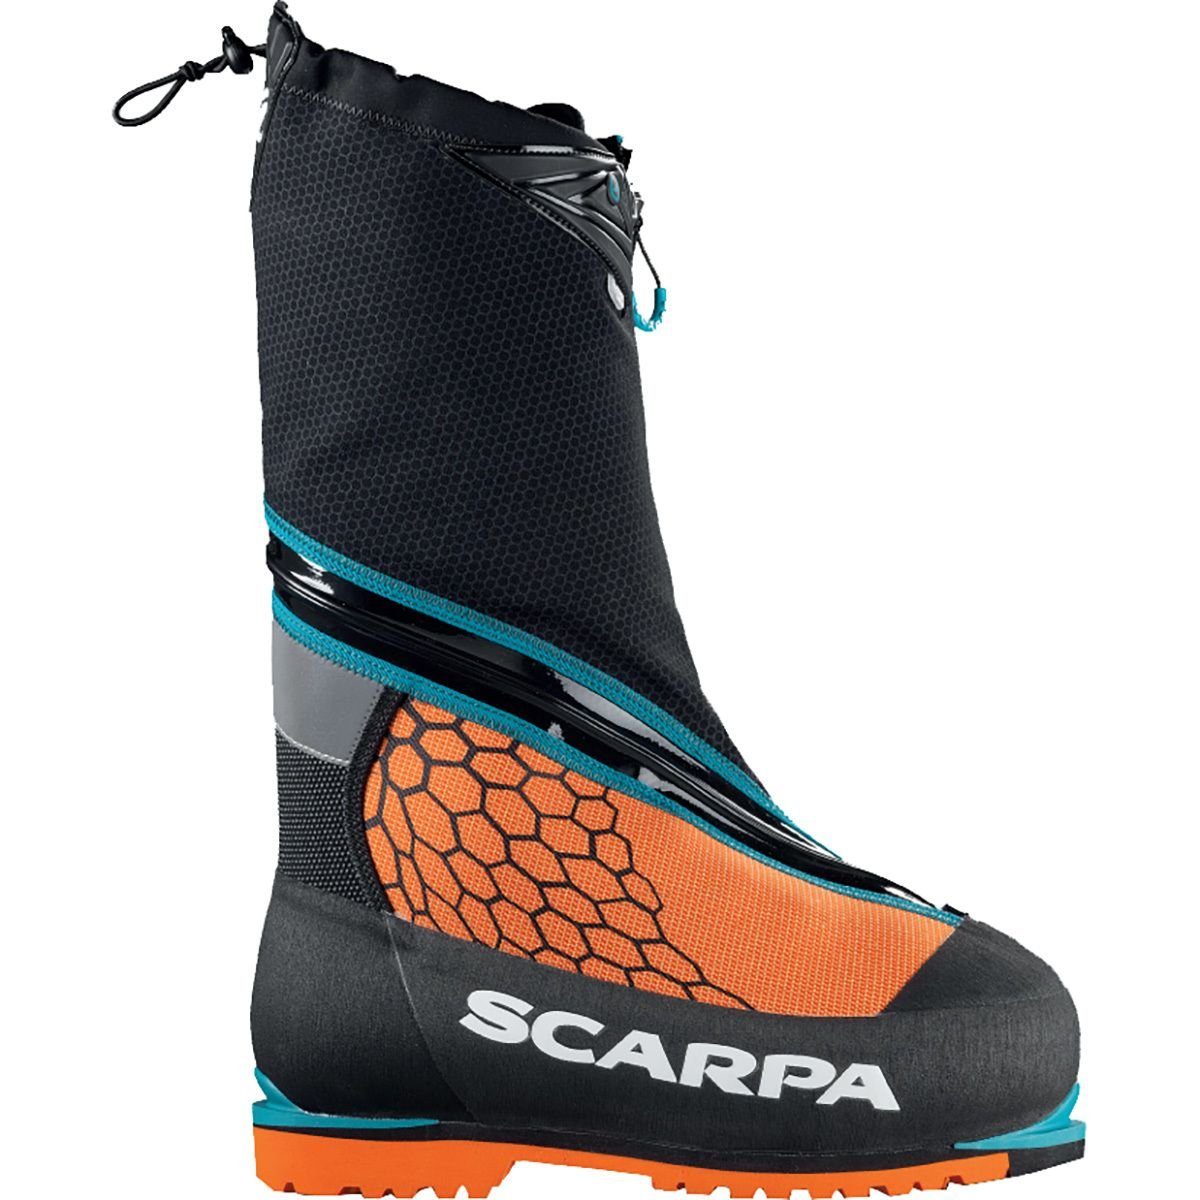 Scarpa Men's Phantom 8000 M Mountaineering Boot, Black/Orange, 39 EU/6.5 M US